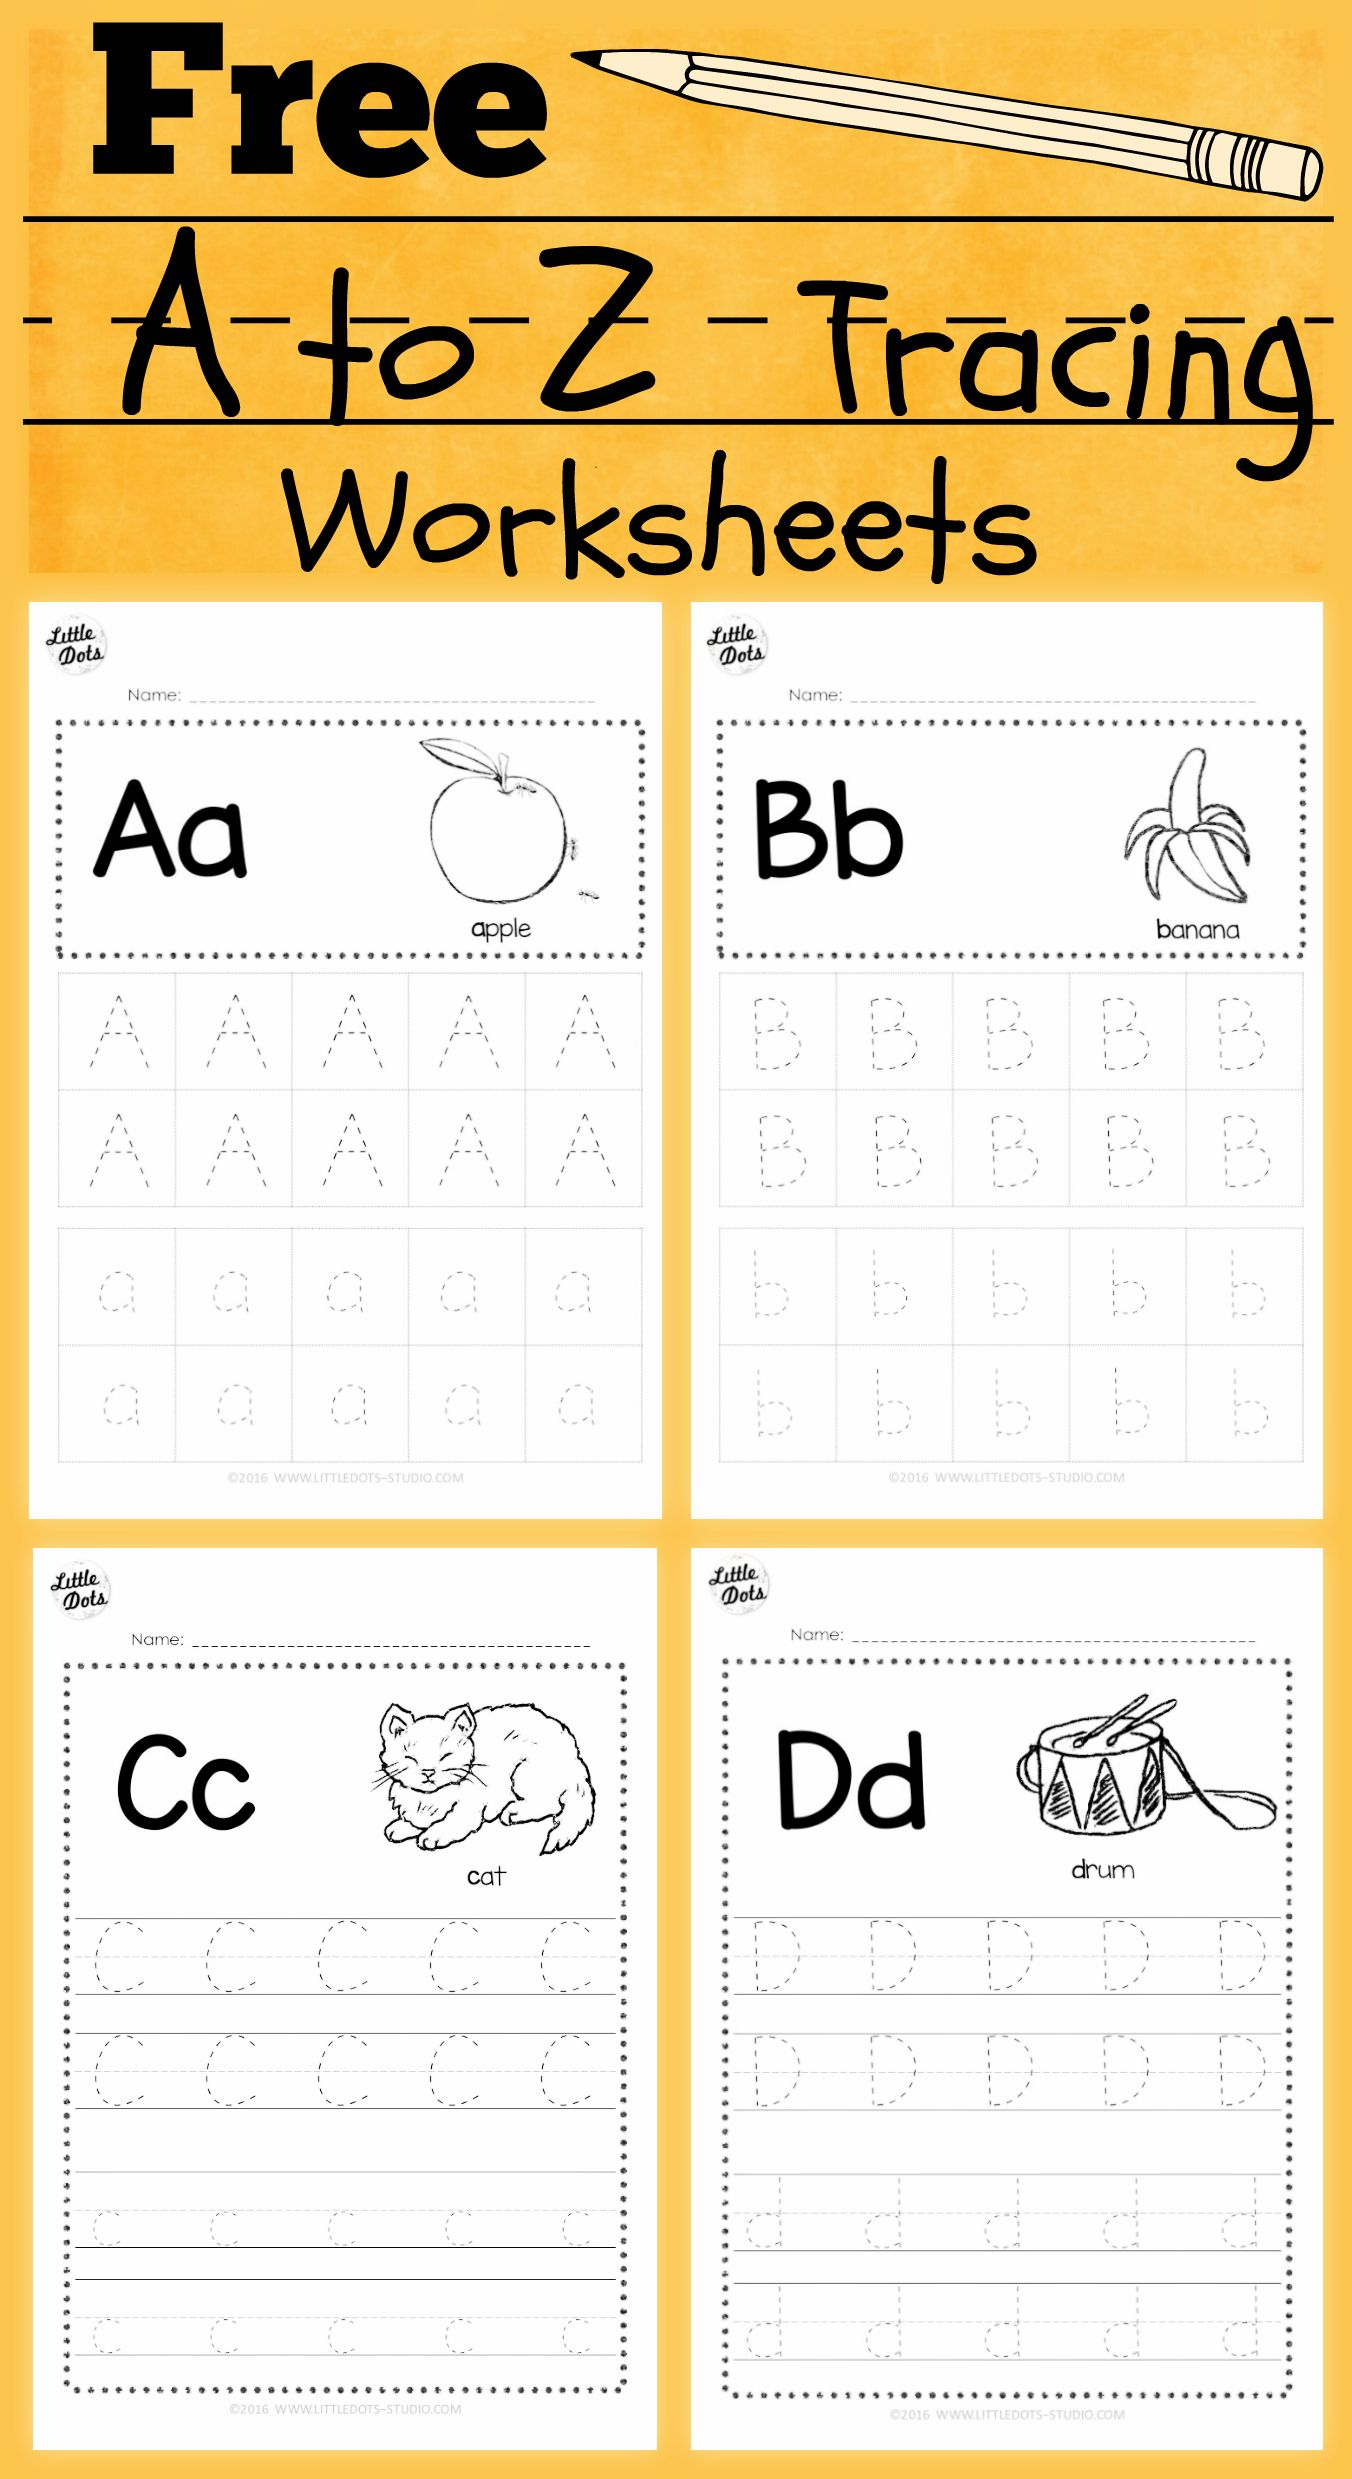 Download Free Alphabet Tracing Worksheets For Letter A To Z intended for Alphabet Worksheets For Kindergarten A To Z Pdf